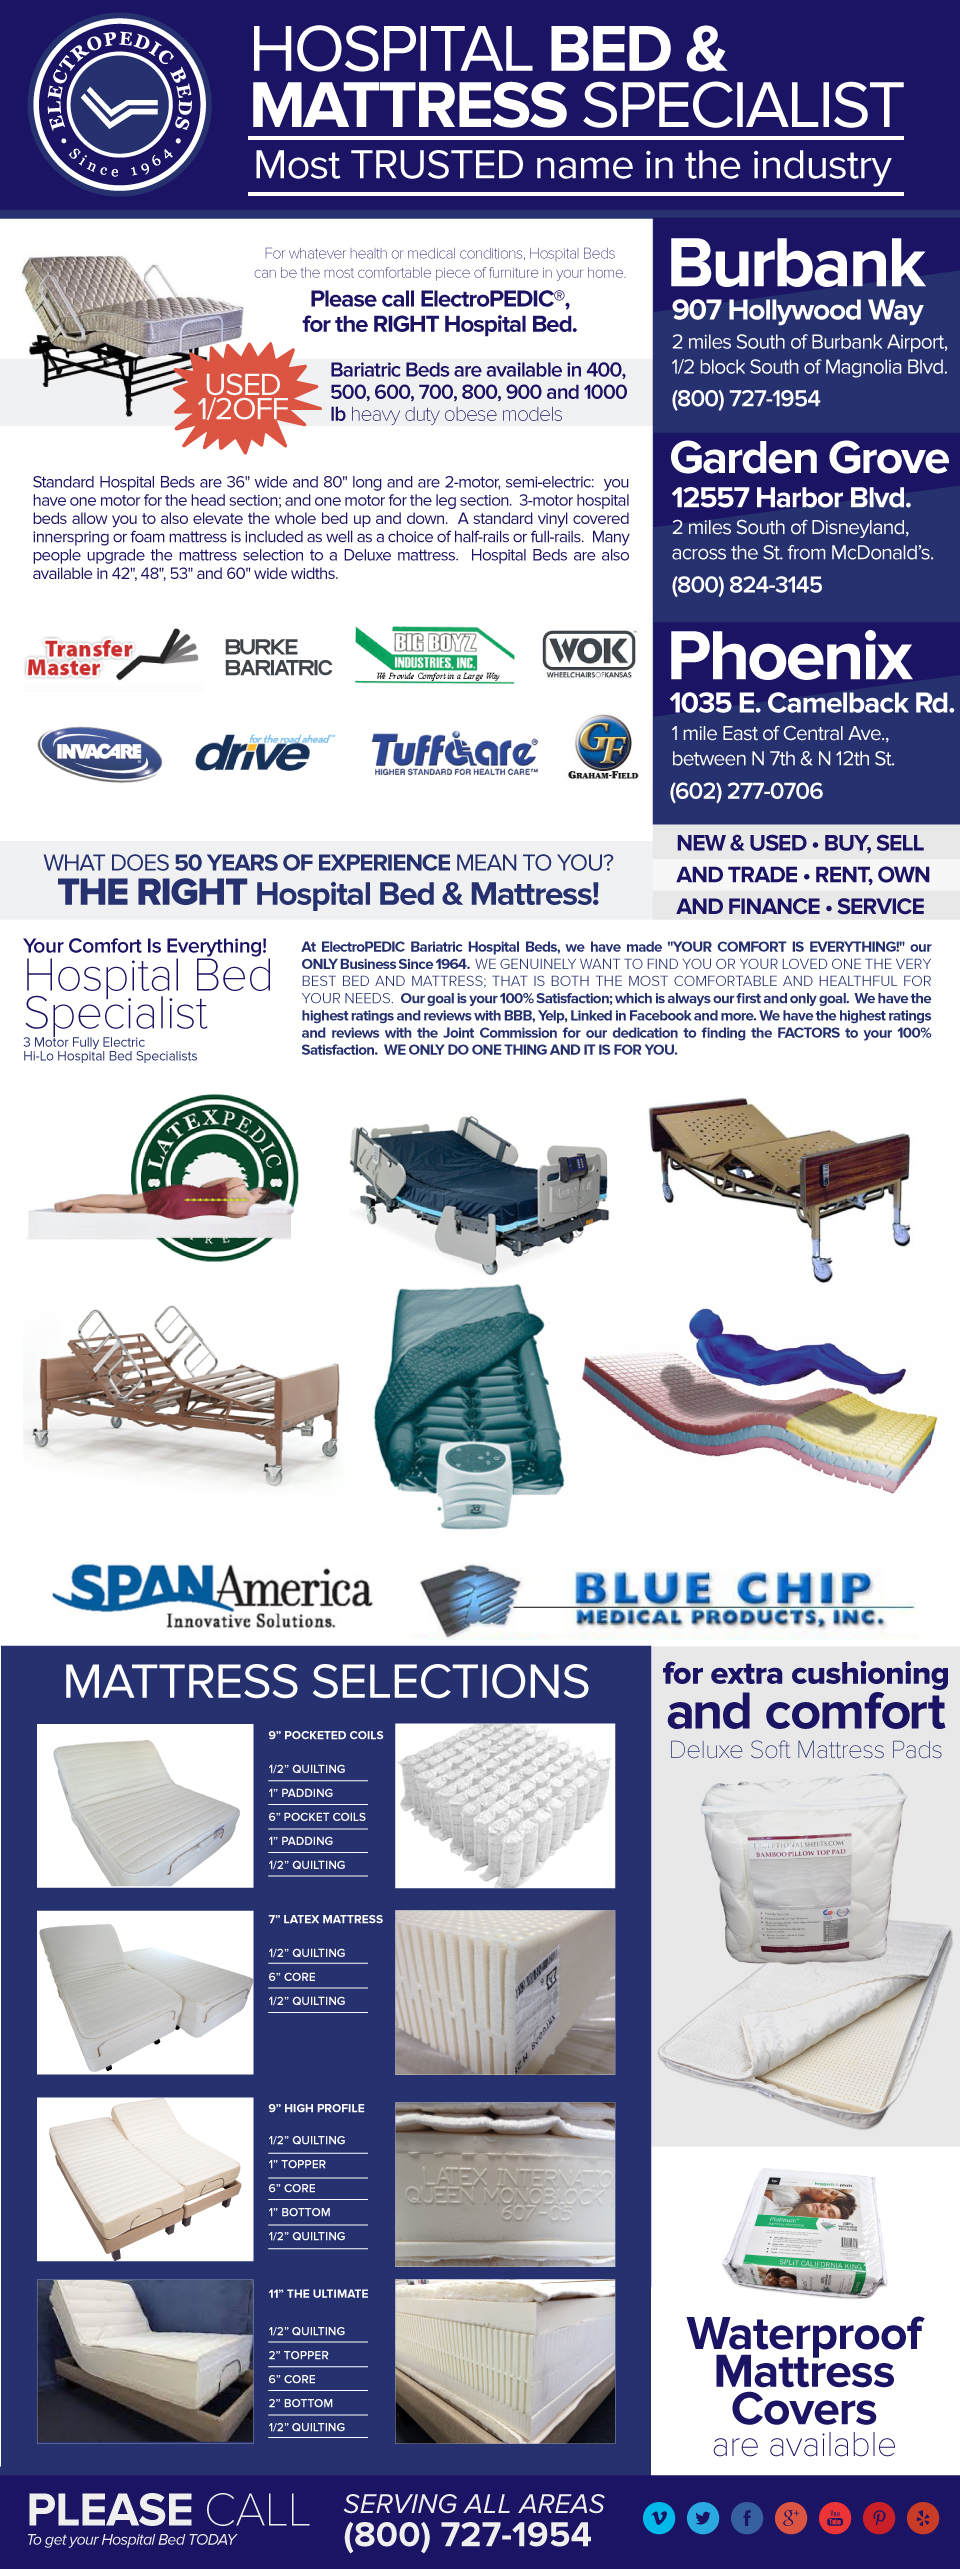 New & Used Hospital Bed Buy, Sell, Rental, Trade & Finance